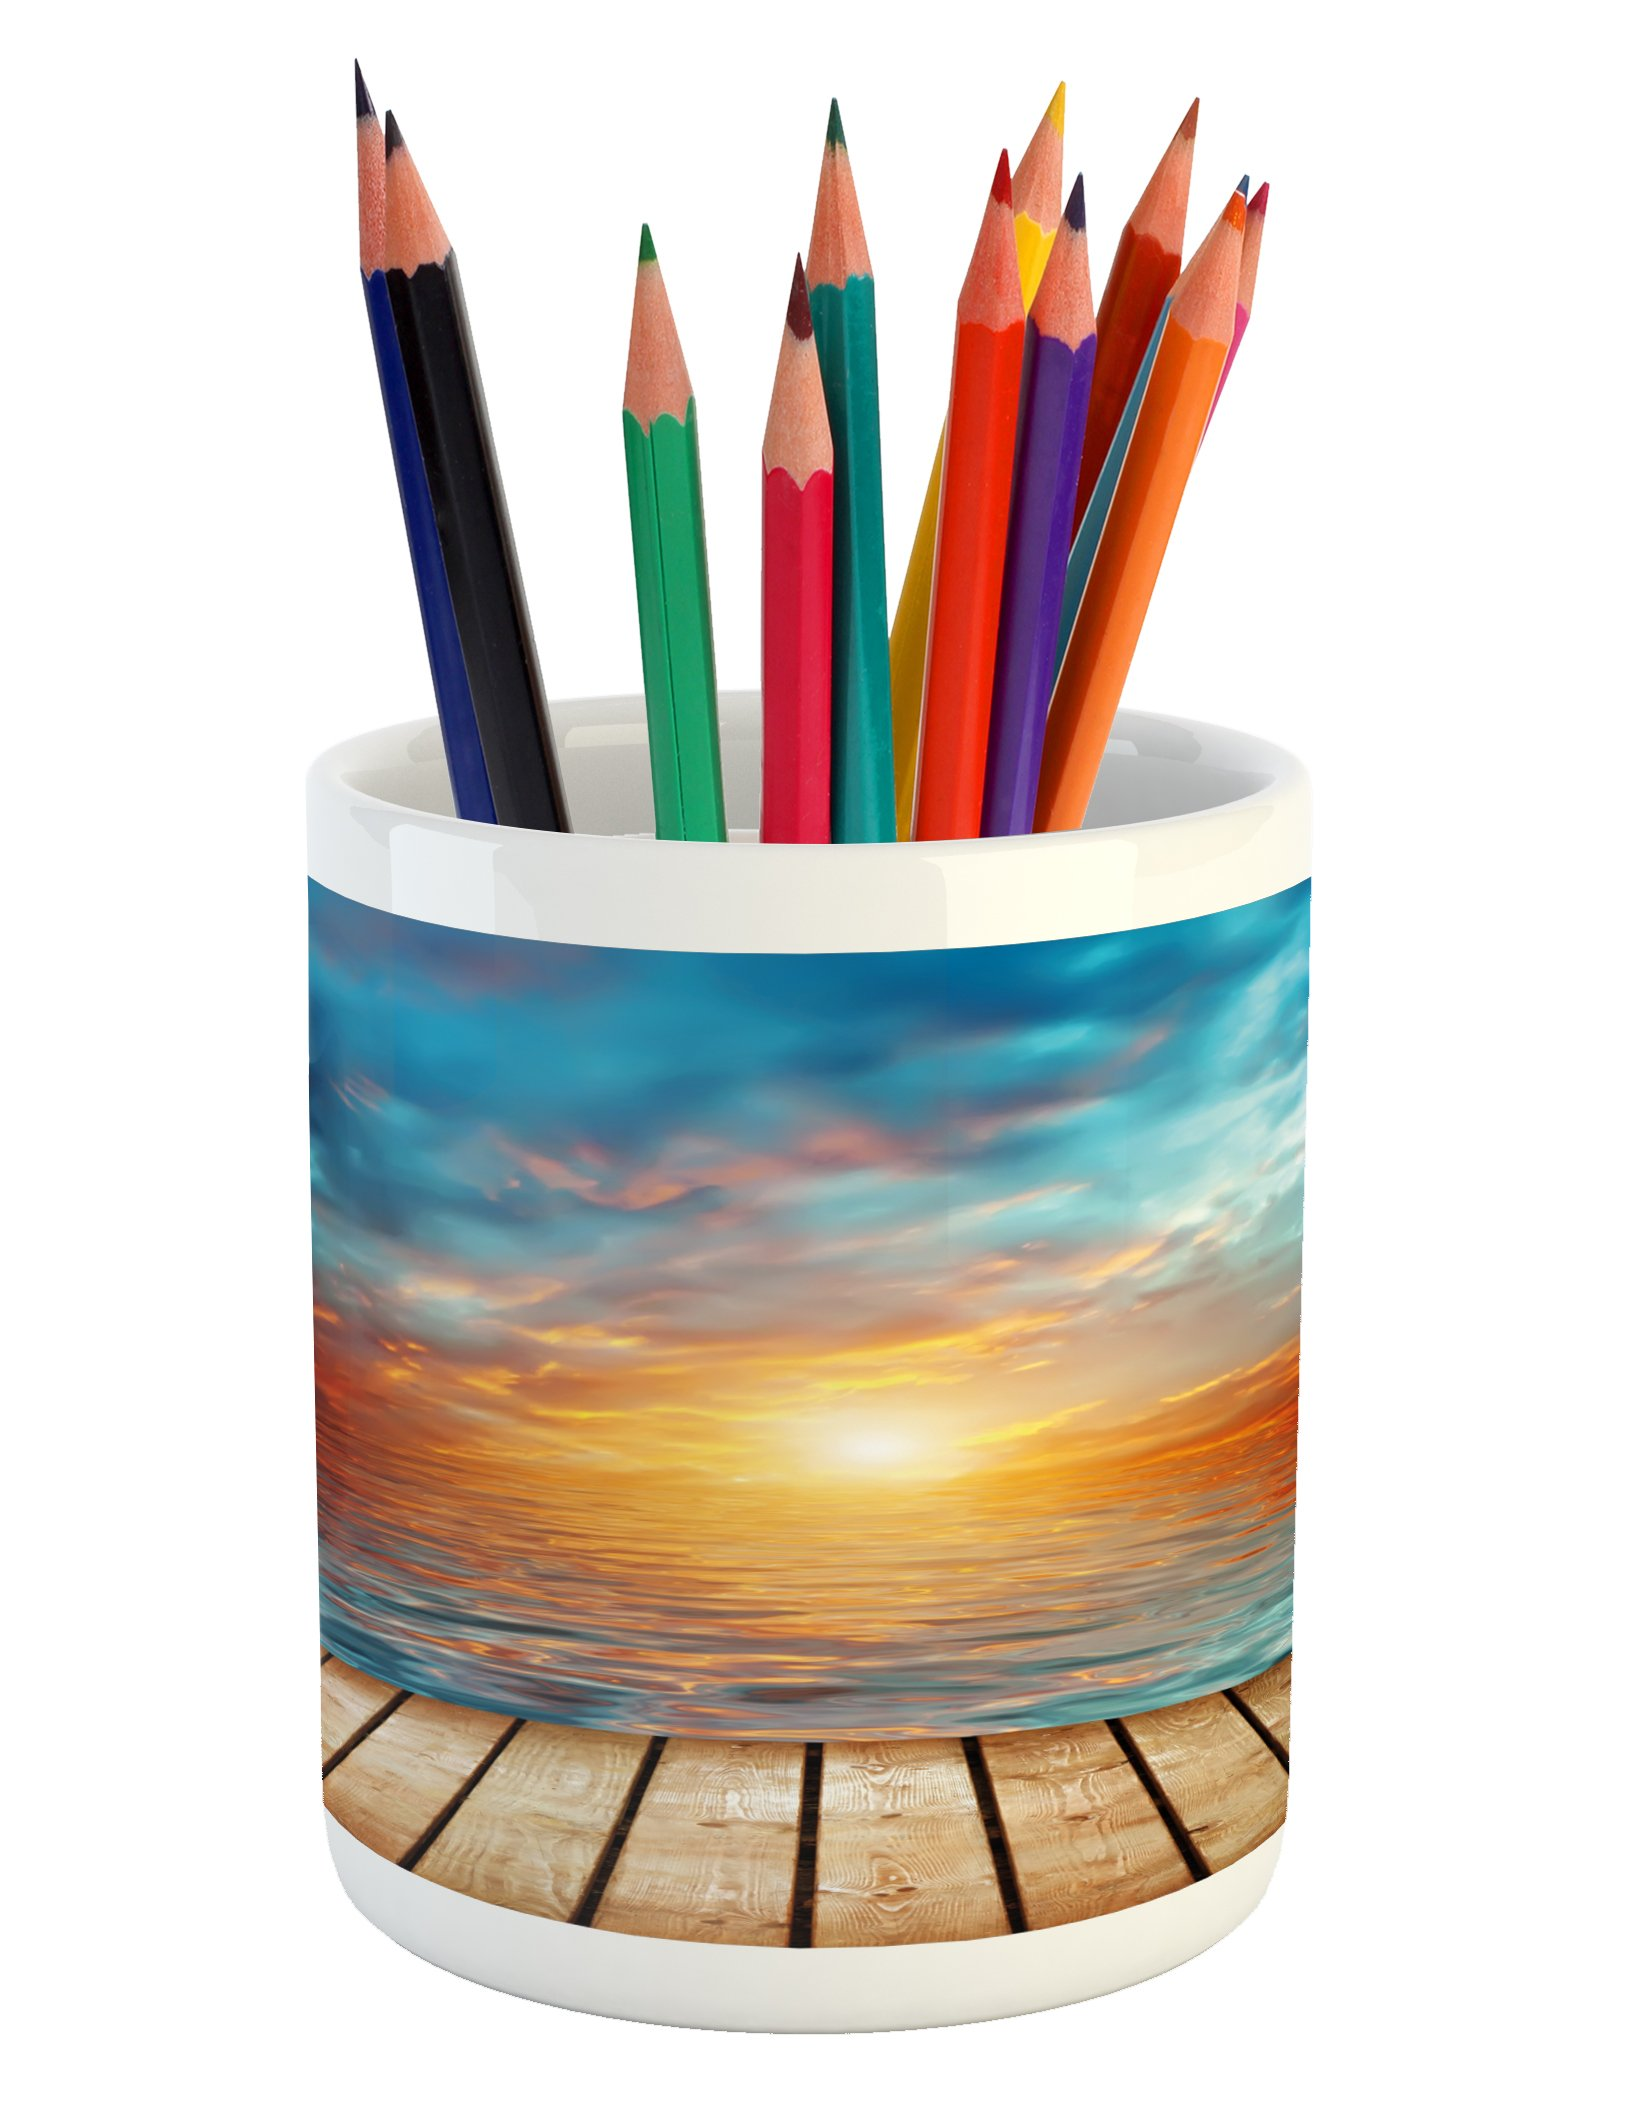 Lunarable Ocean Pencil Pen Holder, Dramatic Sunset Over The Sea Twilight Scenery Beach Skyline Coast Photo, Printed Ceramic Pencil Pen Holder for Desk Office Accessory, Aqua Orange Pale Brown